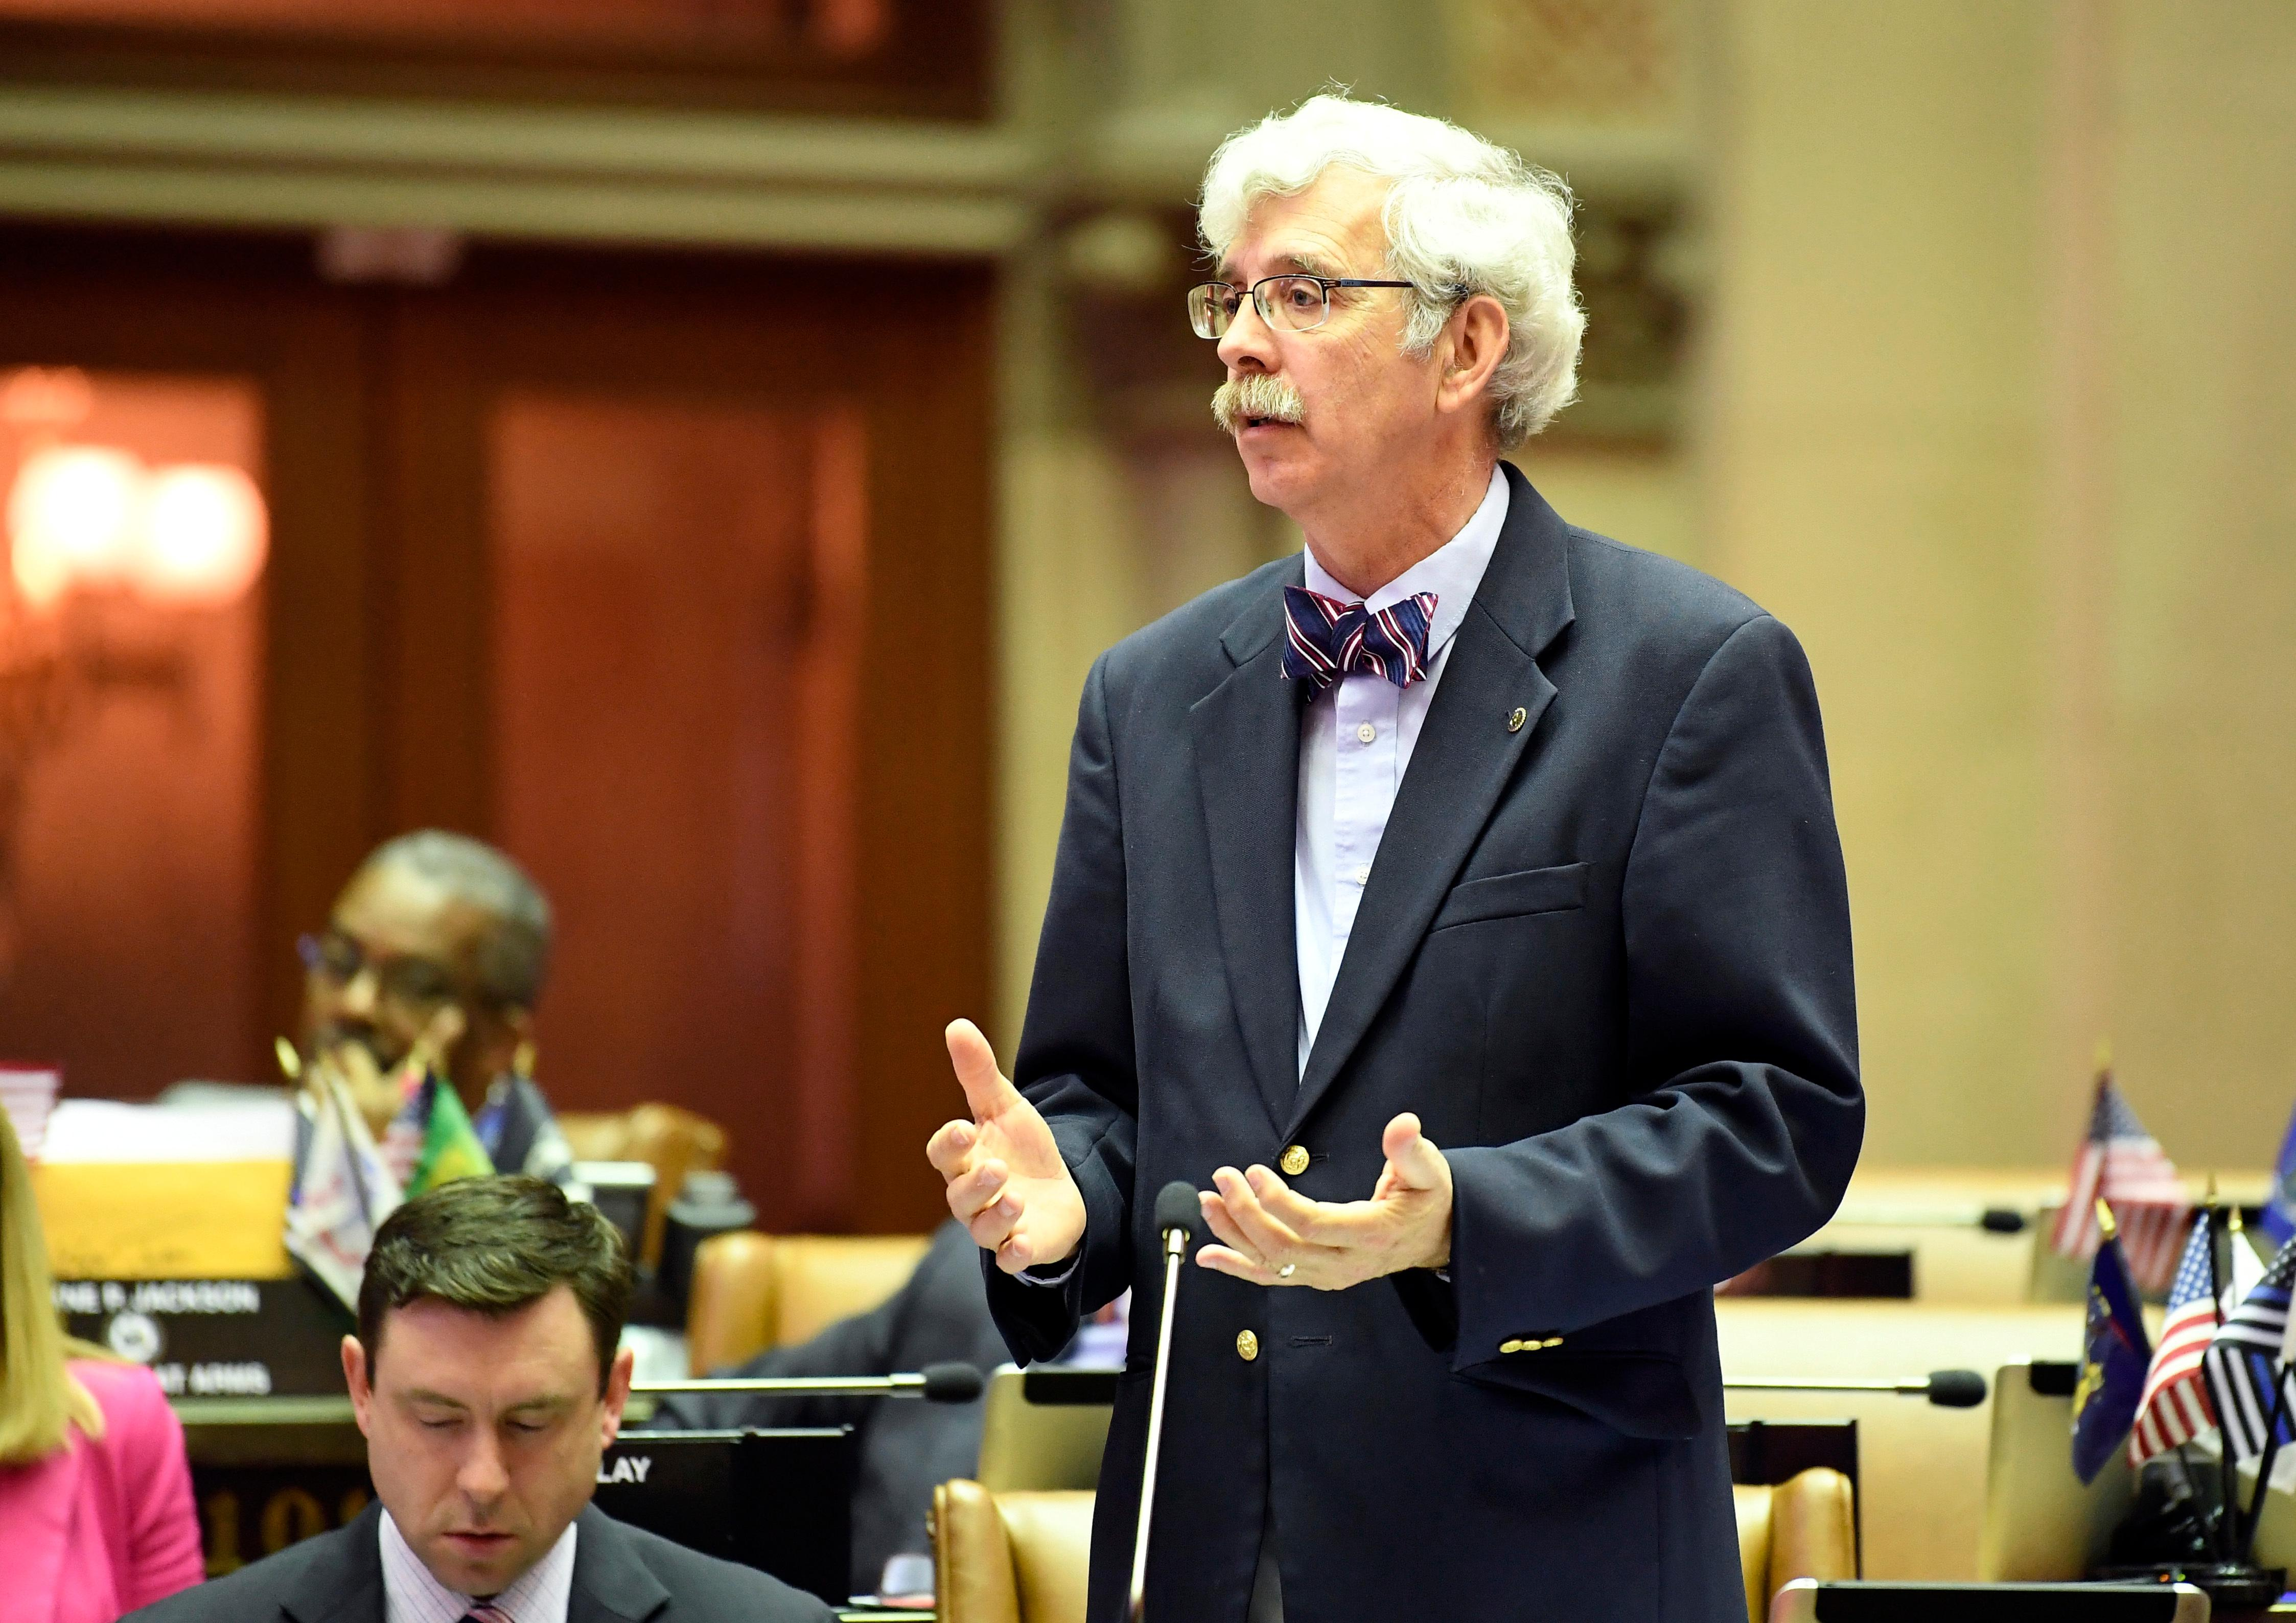 Assemblyman Andy Goodell, R-Jamestown, speaks to members of the New York state Assembly against legislation that authorizes state tax officials to release, if requested, individual New York state tax returns to Congress, during a vote in the Assembly Chamber at the state Capitol Wednesday, May 22, 2019, in Albany, N.Y. (AP Photo/Hans Pennink)